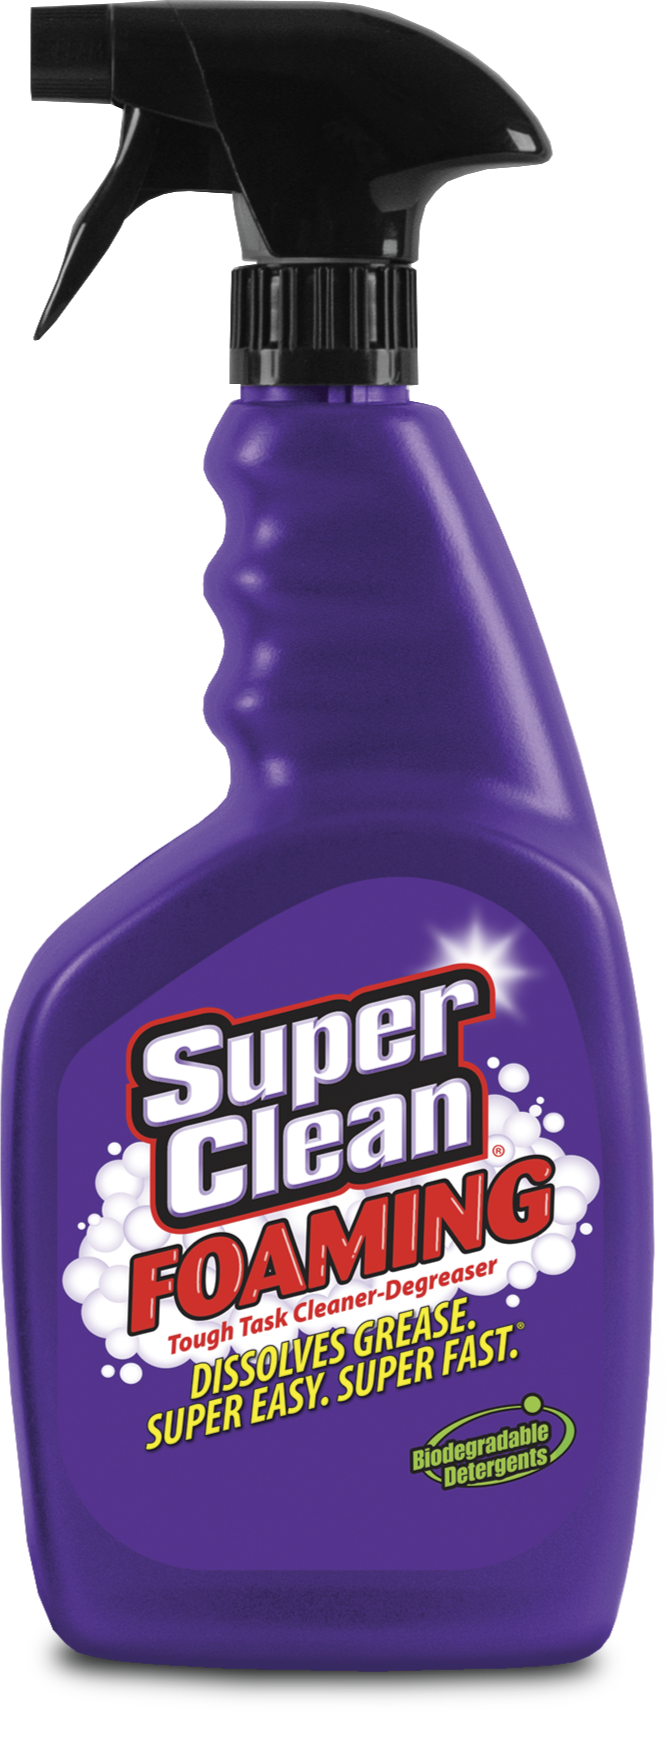 SuperClean Foaming Cleaner-Degreaser 32 Ounce